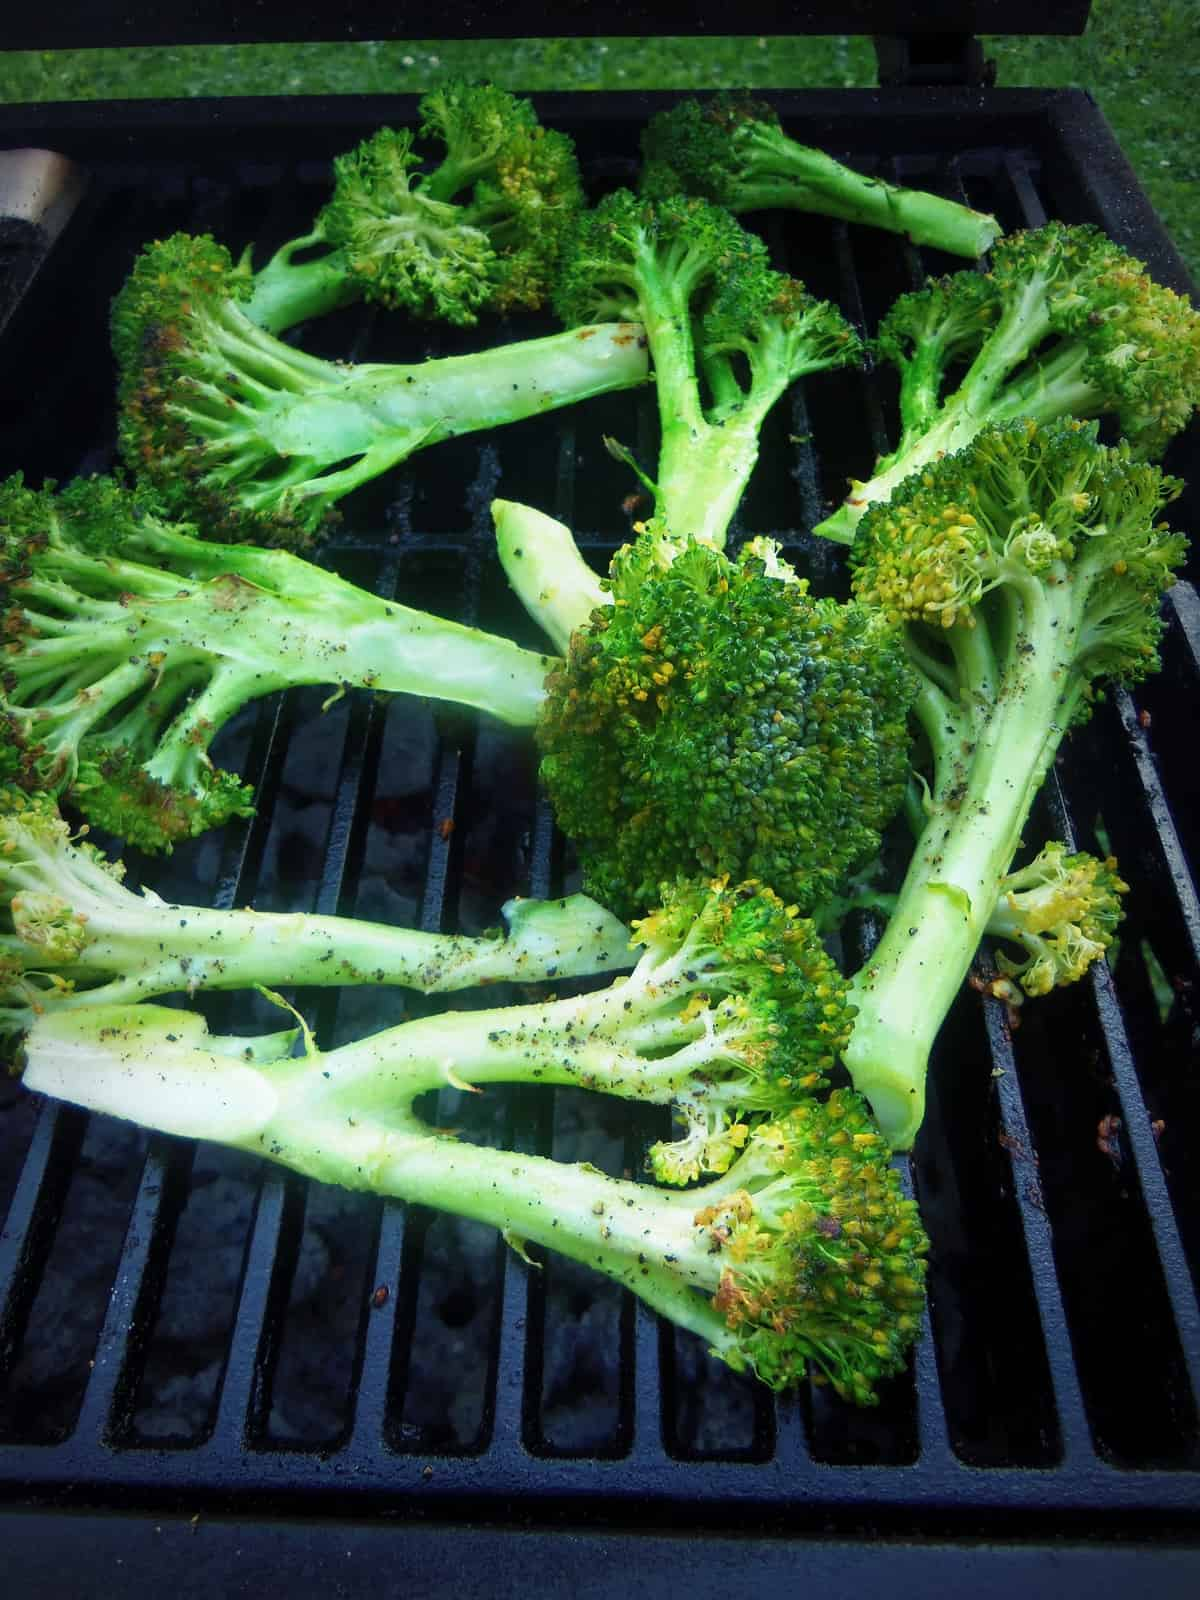 Grilling broccoli for the first time. It only takes a few minutes. I would steam them in the microwave for a few minutes before grilling next time.